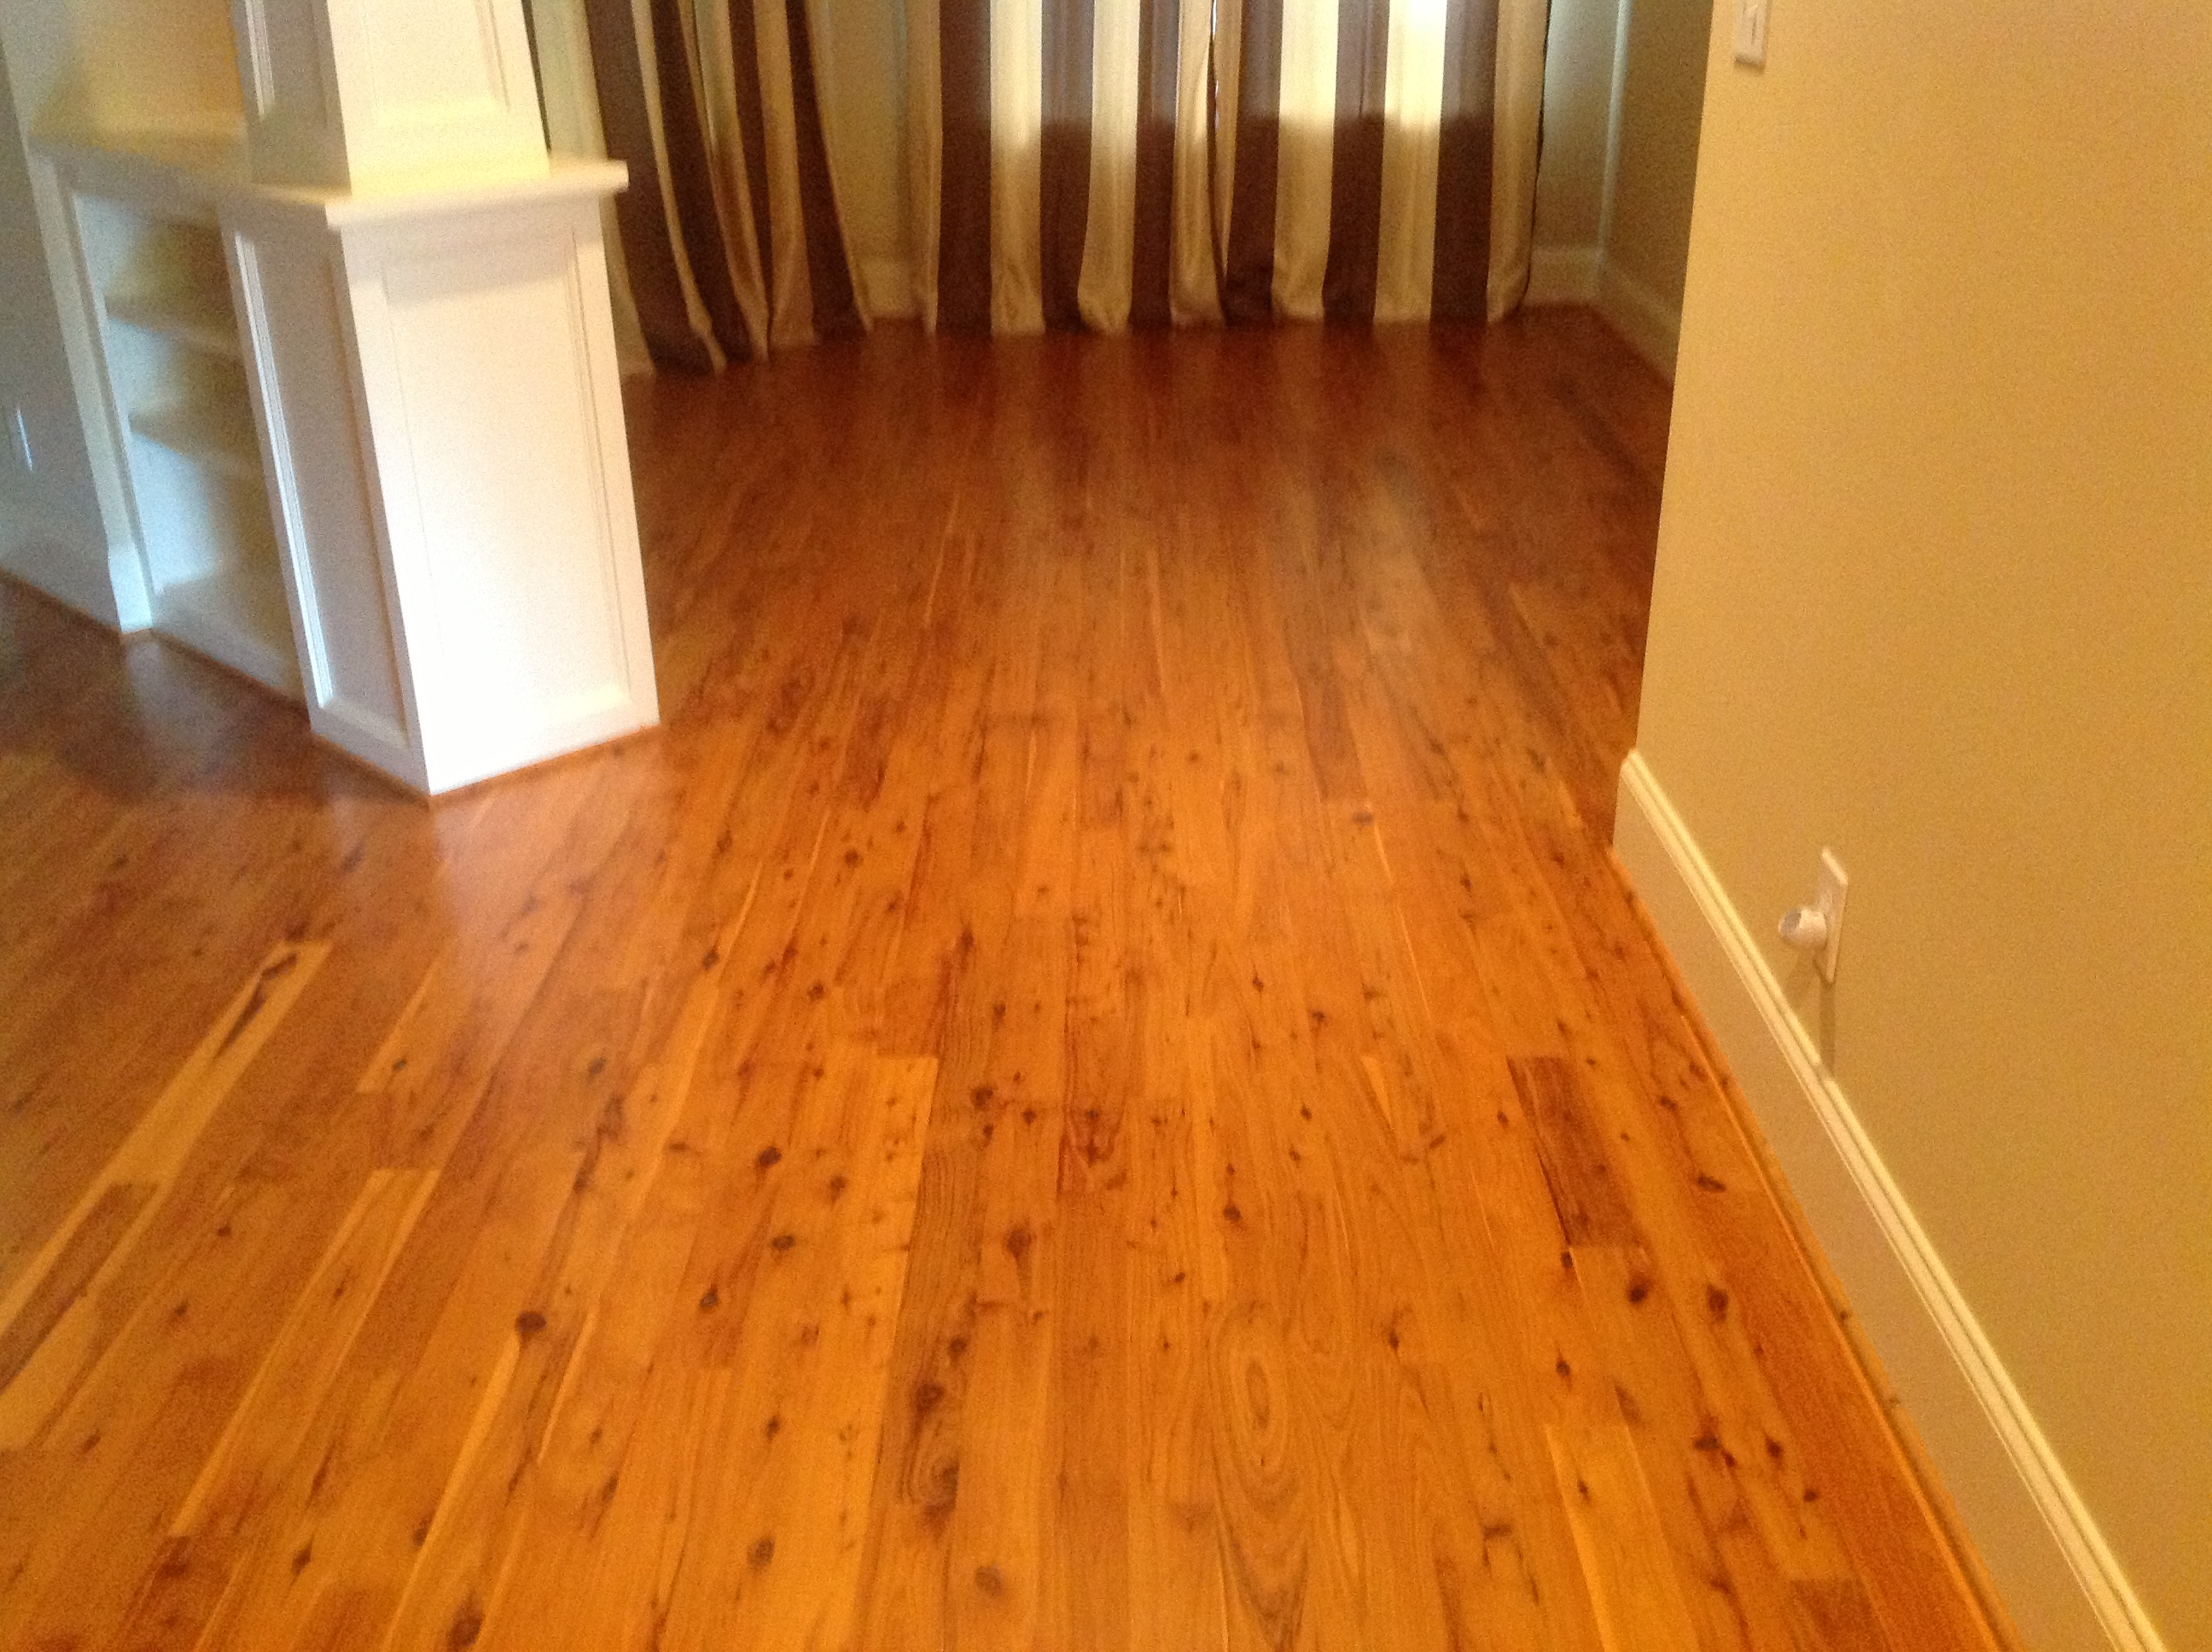 Top 28 wooden floors company wood floors parquet for Hardwood flooring company